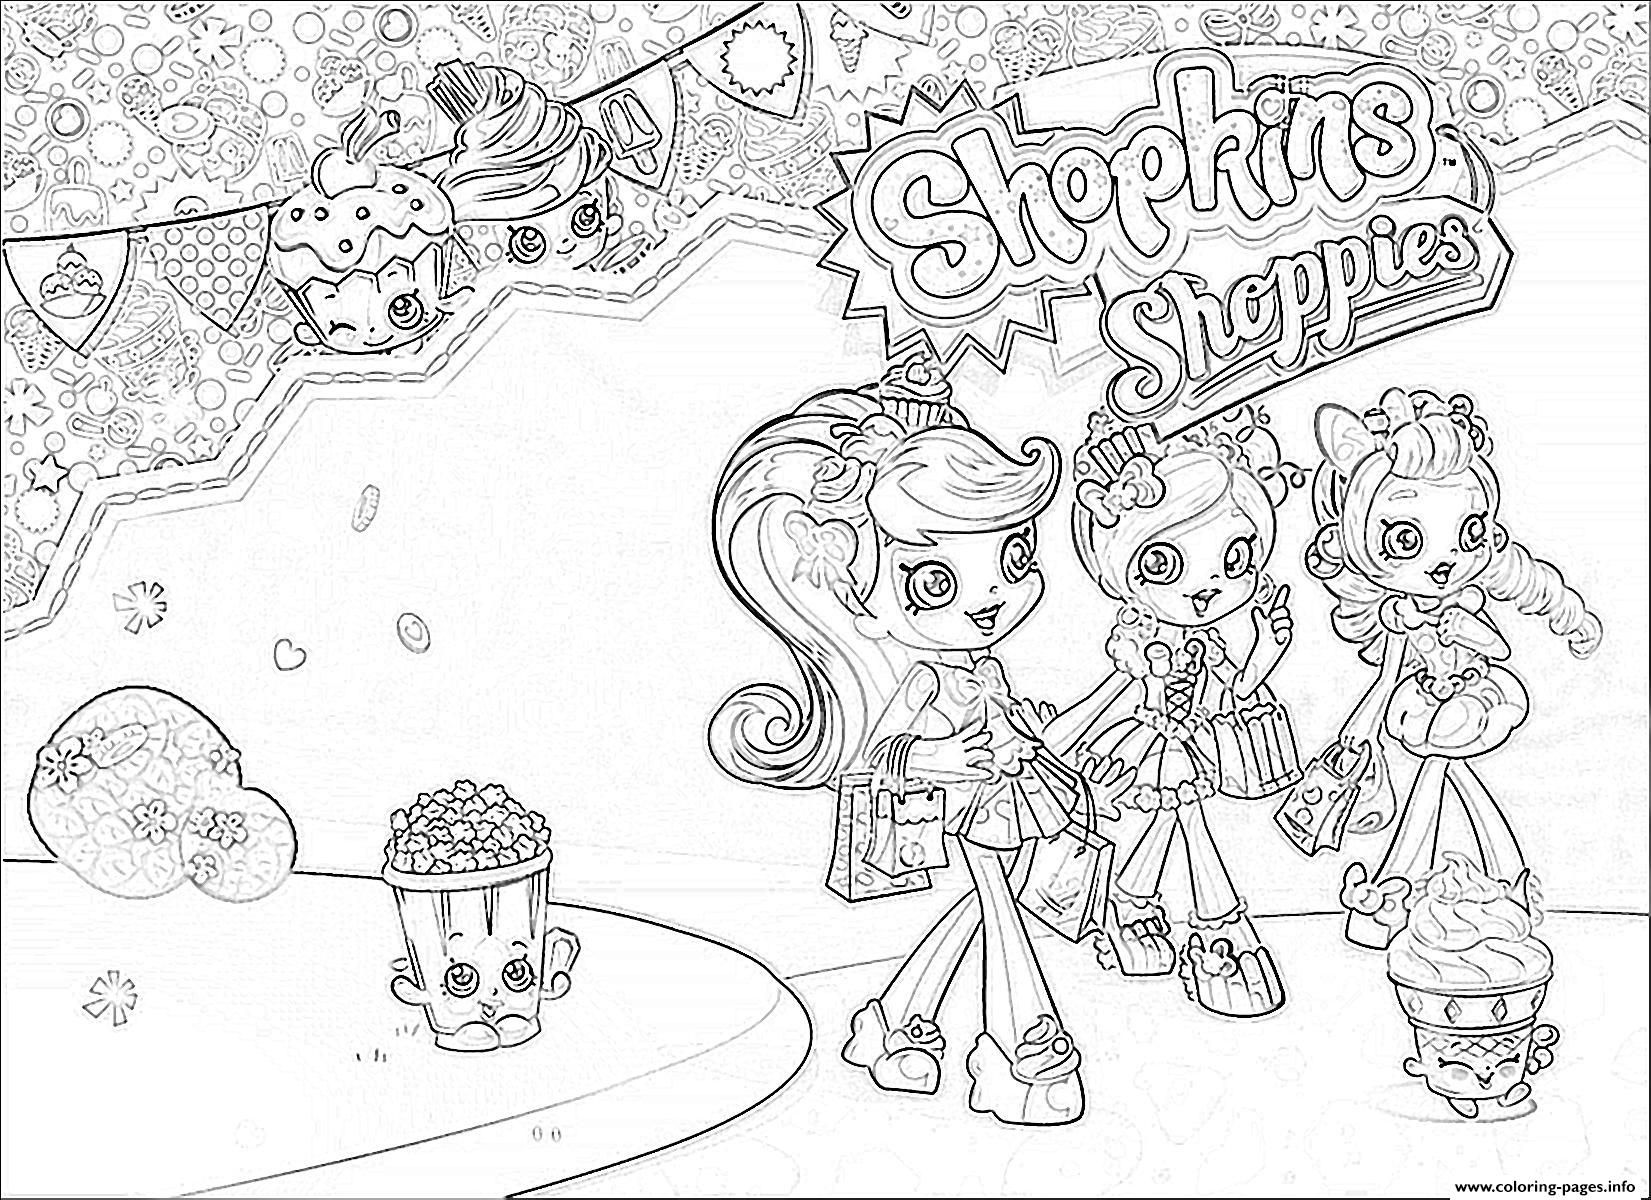 Shopkins coloring pages to print out - Shopkins Shoppies Girls Coloring Pages Printable And Coloring Book To Print For Free Find More Coloring Pages Online For Kids And Adults Of Shopkins